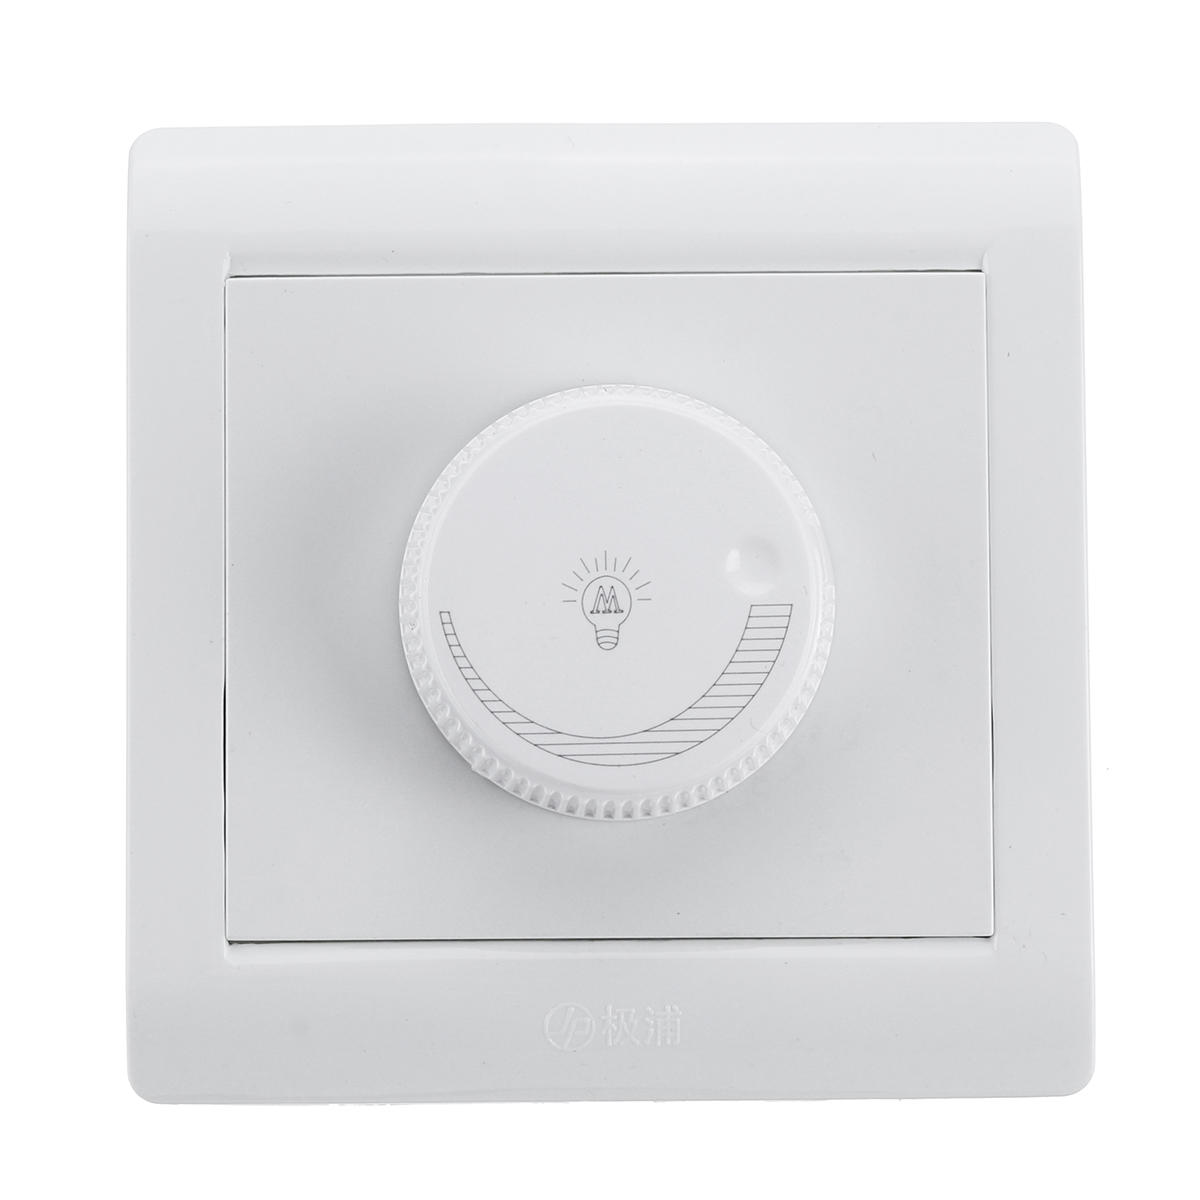 Dimmer Switch 1000w Ac 180 275v Led Light Dimming Switch Light Adjustable 86 Type Home Dimmer Lighting